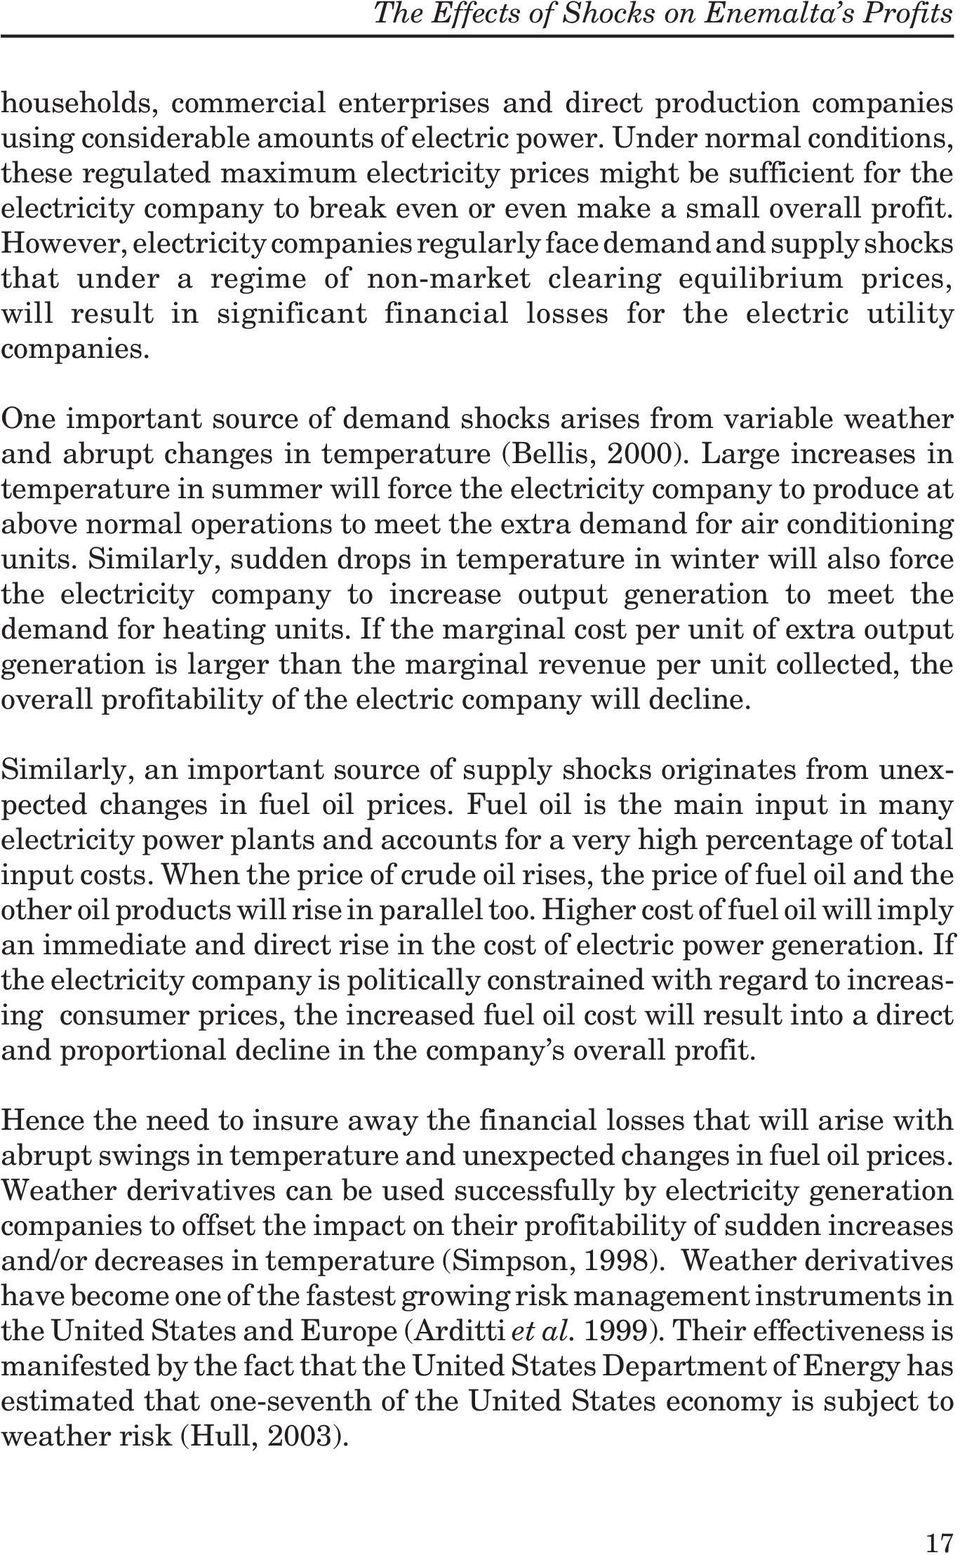 However, electricity companies regularly face demand and supply shocks that under a regime of non-market clearing equilibrium prices, will result in significant financial losses for the electric